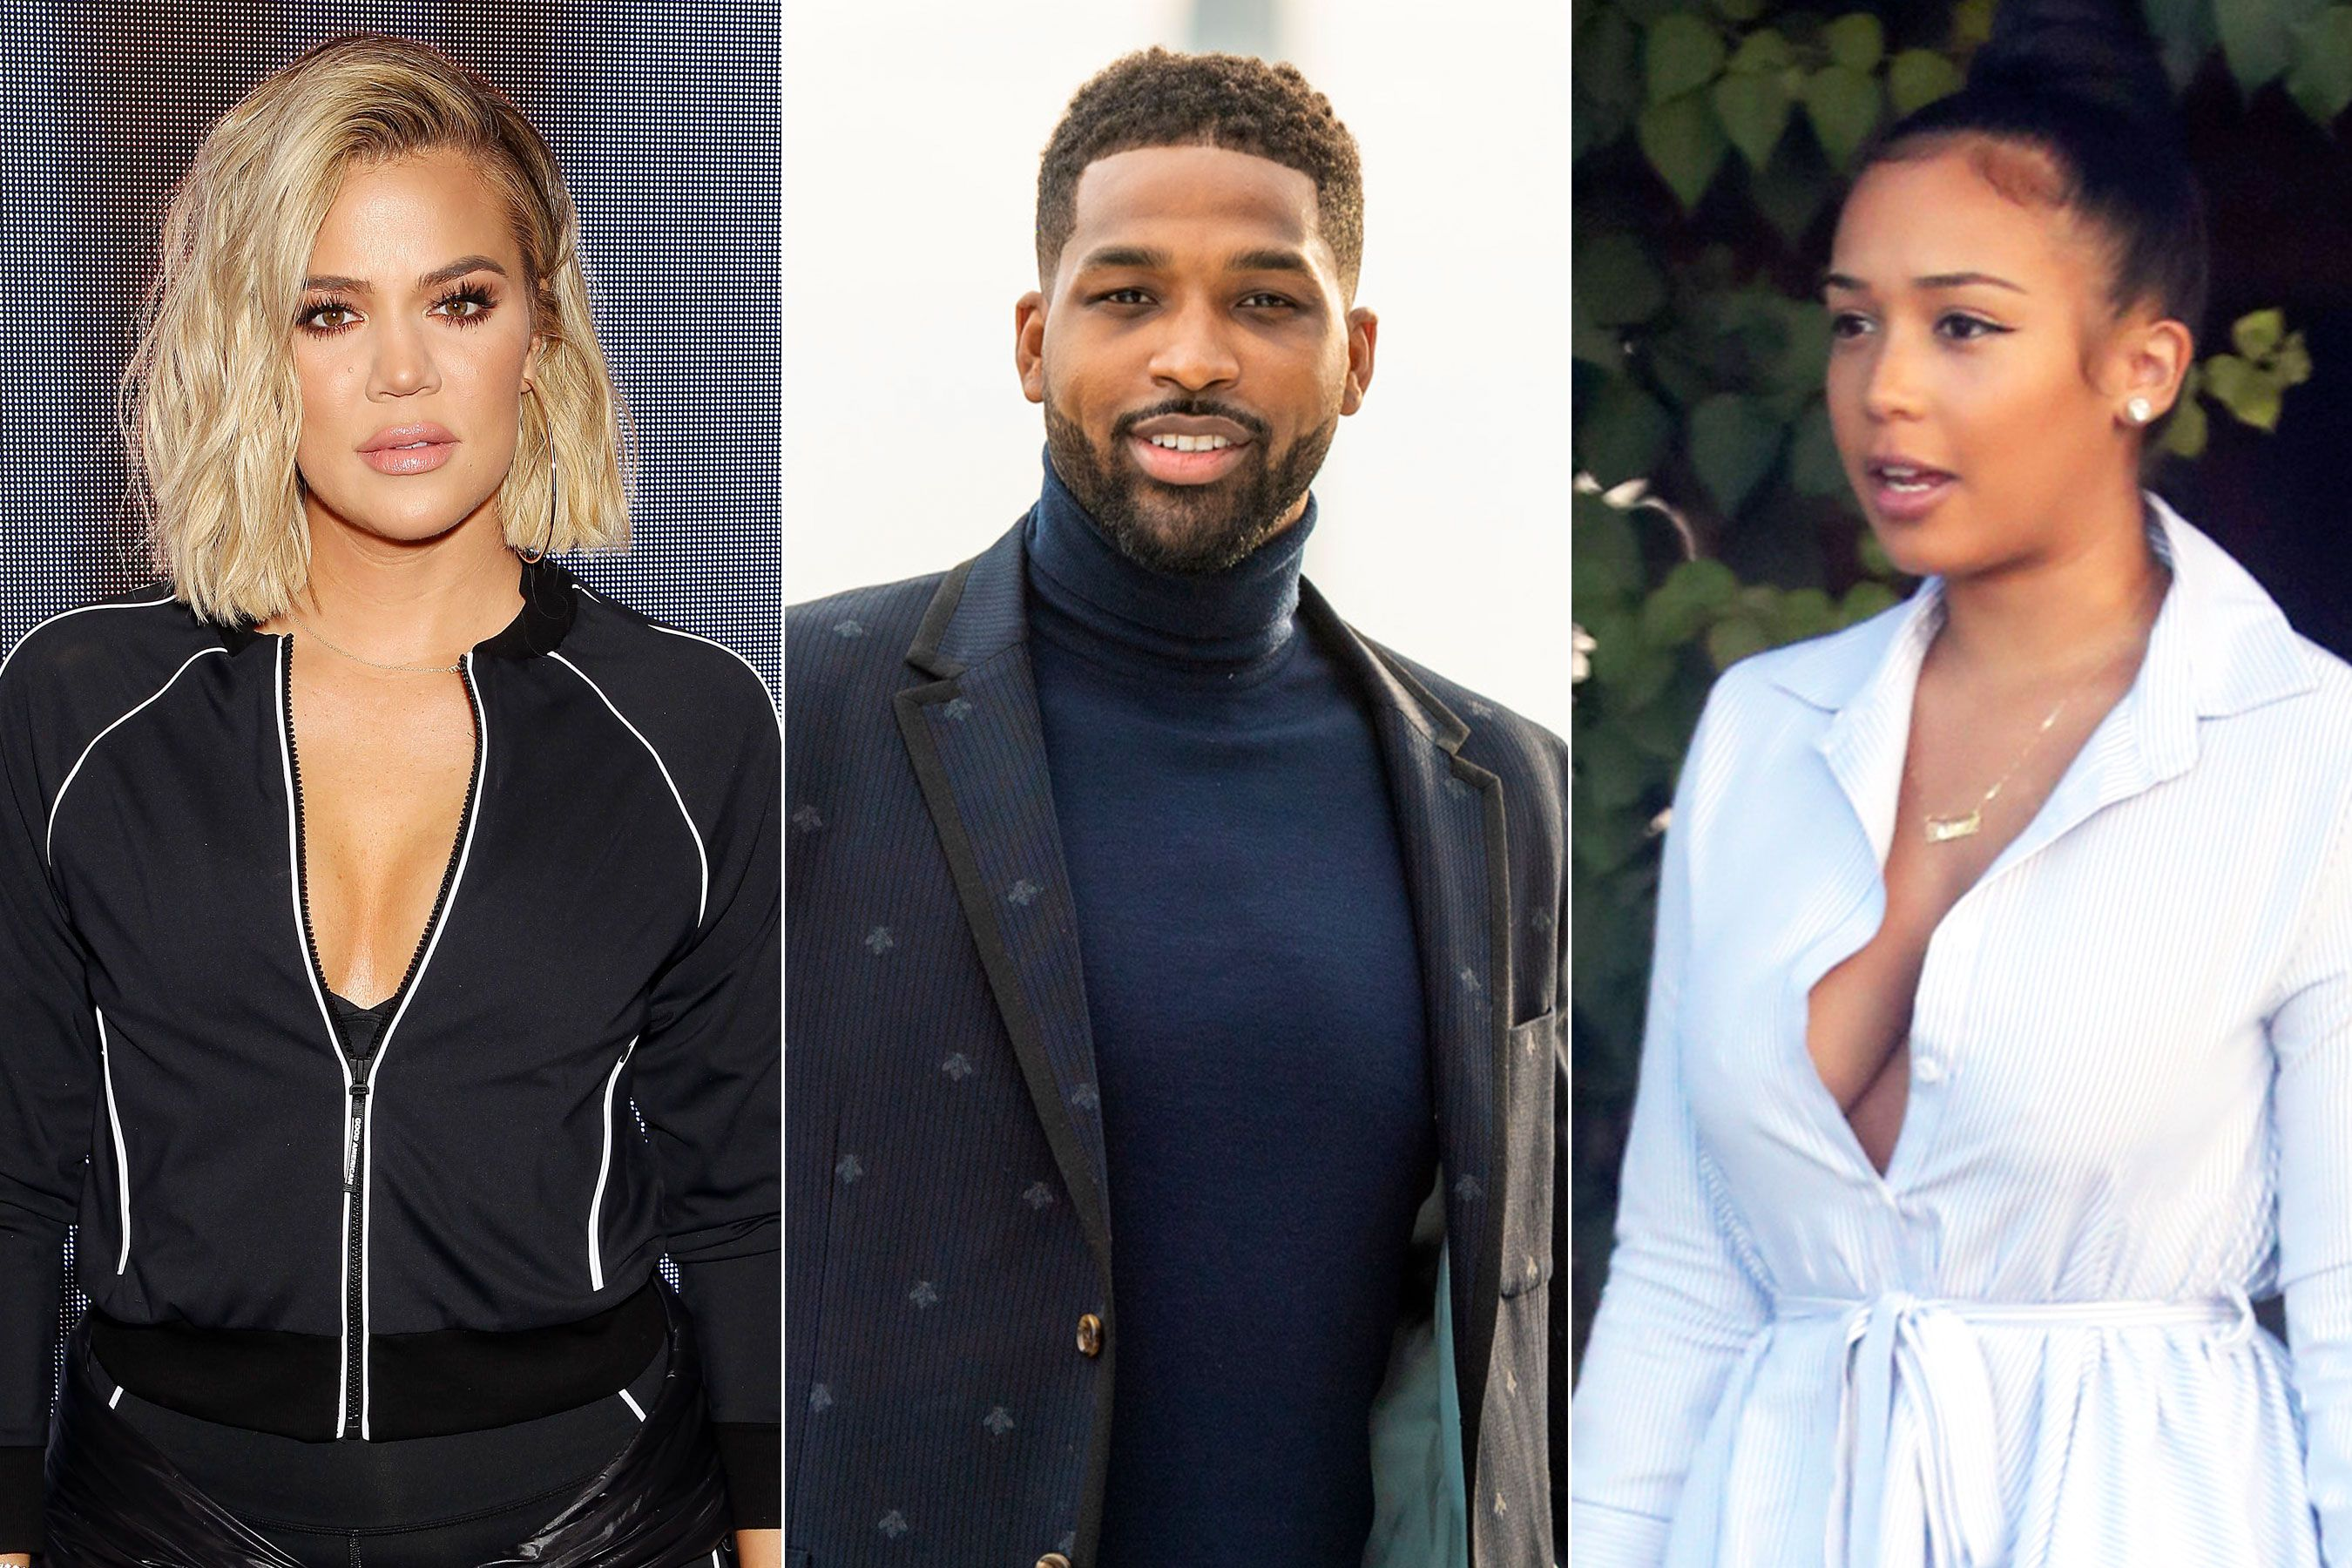 Khloe Kardashian Slams Rumor Tristan Thompson Left His Then Pregnant Girlfriend For Her Khloe Kardashian Khloe Tristan Thompson